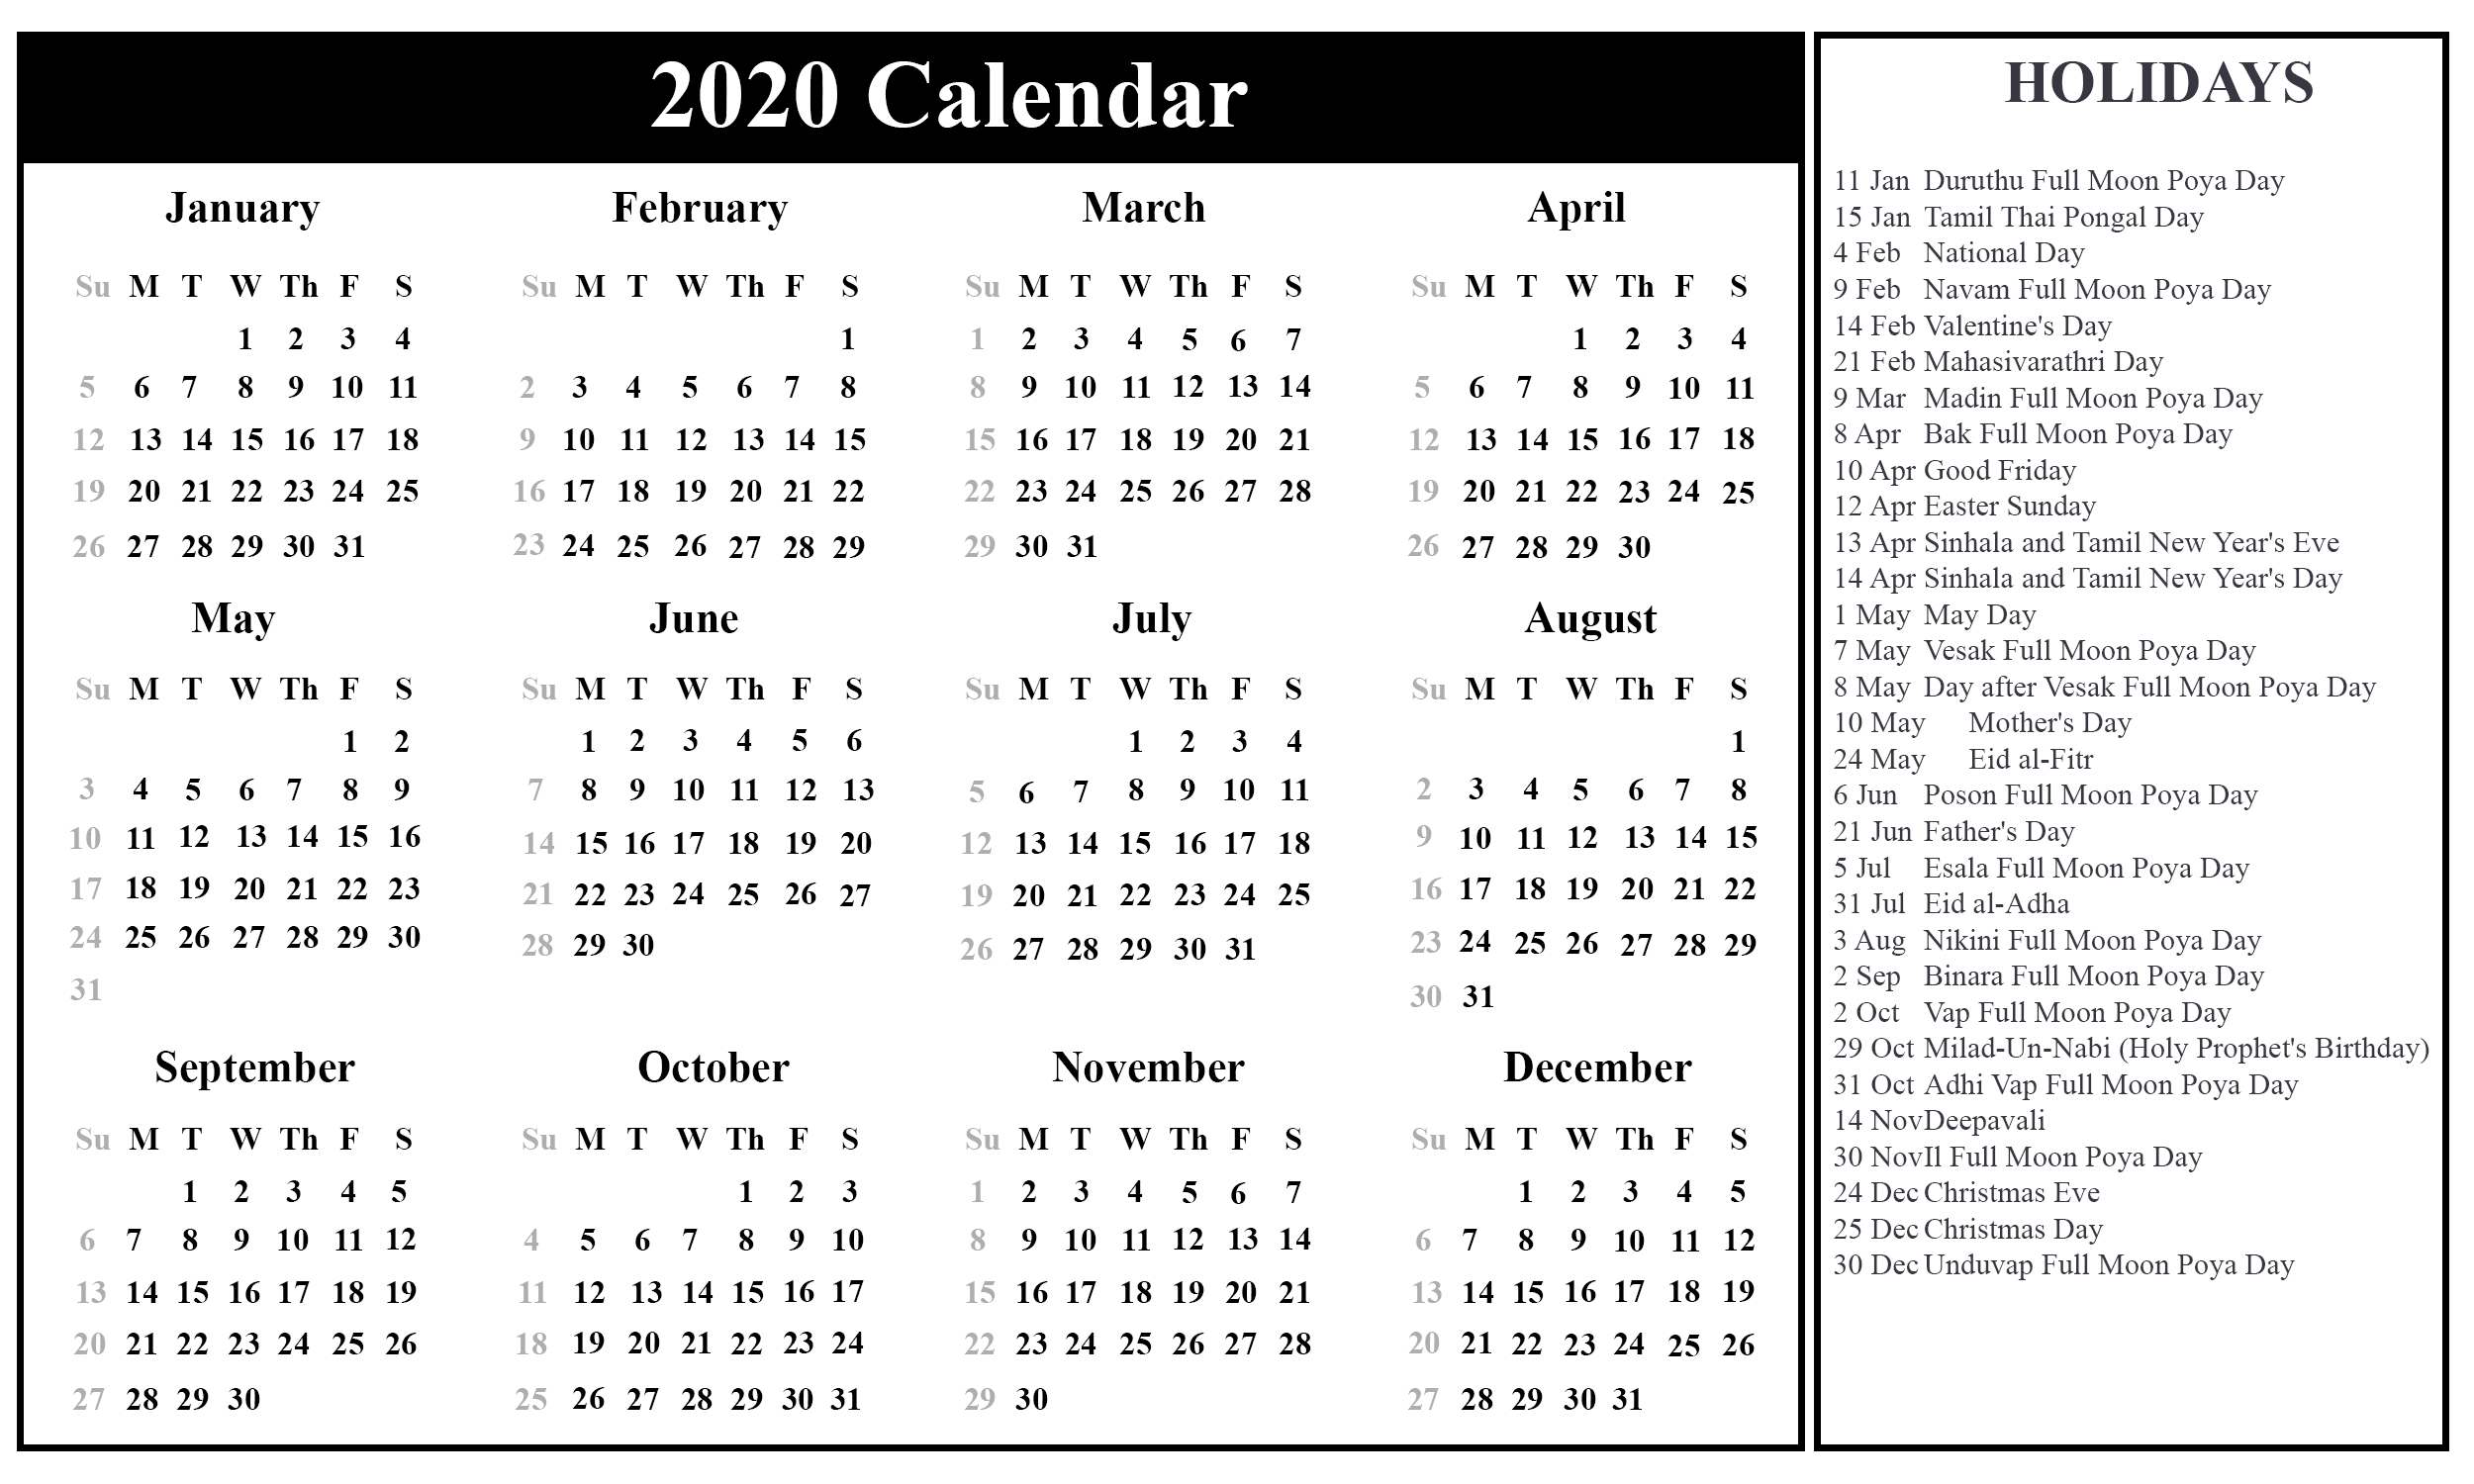 Srilanka-Holiday-2020-2 | Printable Template Calendar with regard to 2020 Sri Lanka Calendar